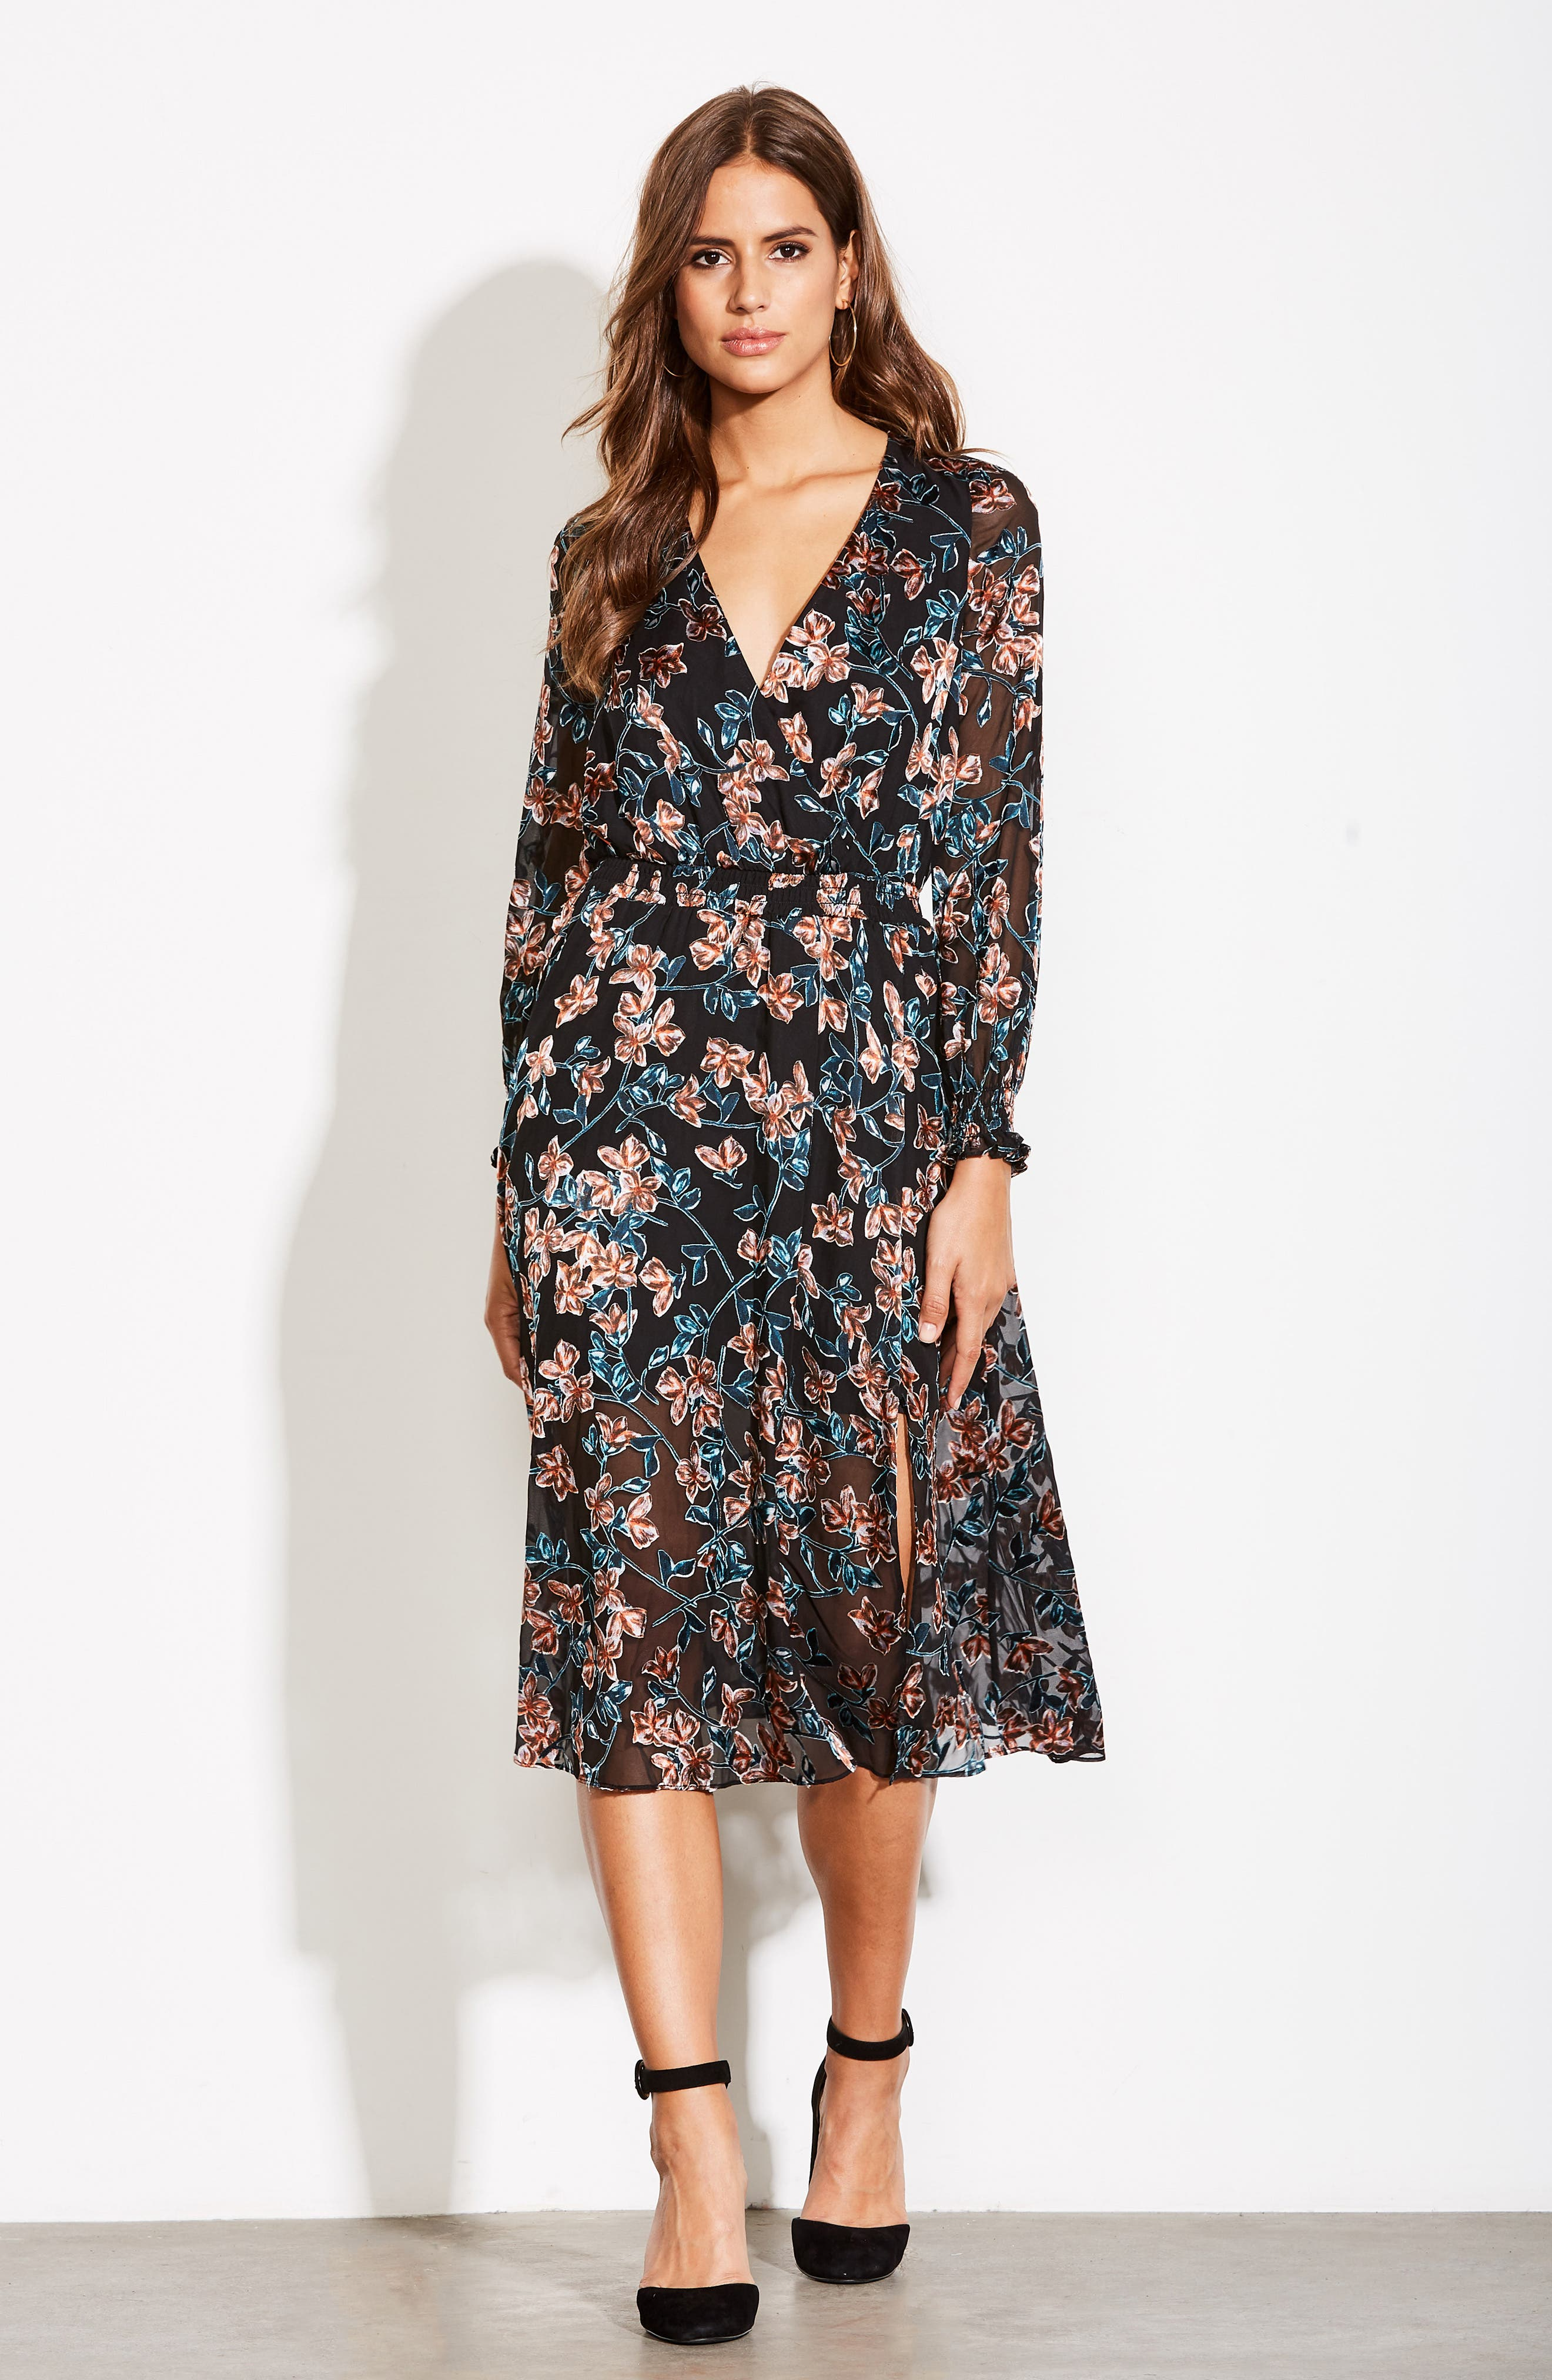 ALI & JAY, Treat Me Like a Lady Floral Dress, Alternate thumbnail 8, color, 001